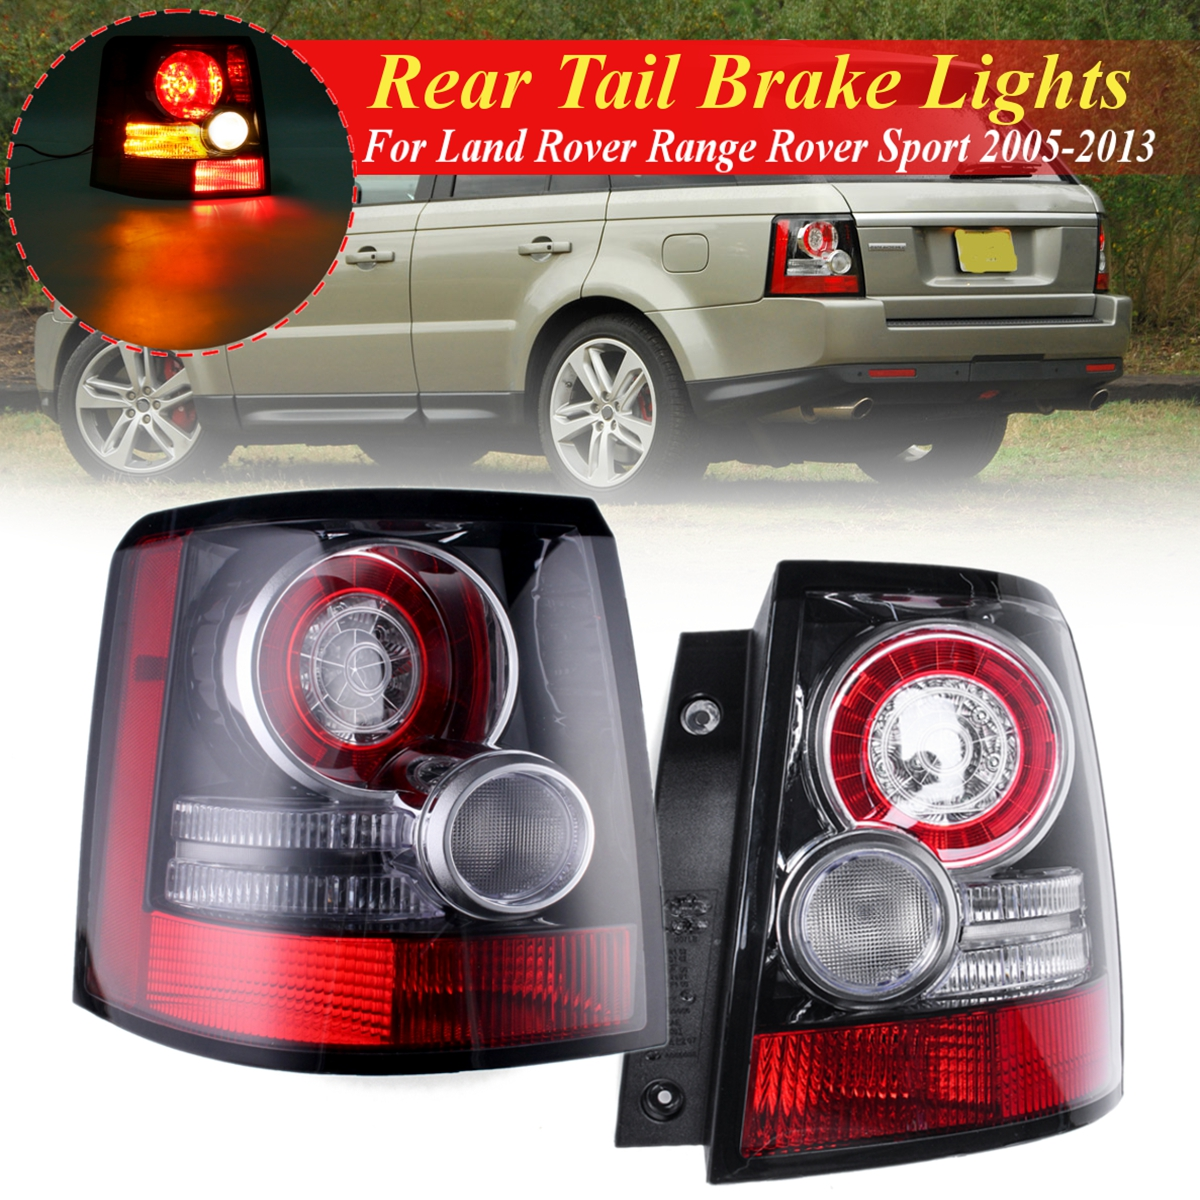 For Land Rover Range Rover Sport 2005 2006 2007-2013 1 Pair Car Rear Tail Brake Lights Bumper Reflector Taillights Stop LampFor Land Rover Range Rover Sport 2005 2006 2007-2013 1 Pair Car Rear Tail Brake Lights Bumper Reflector Taillights Stop Lamp